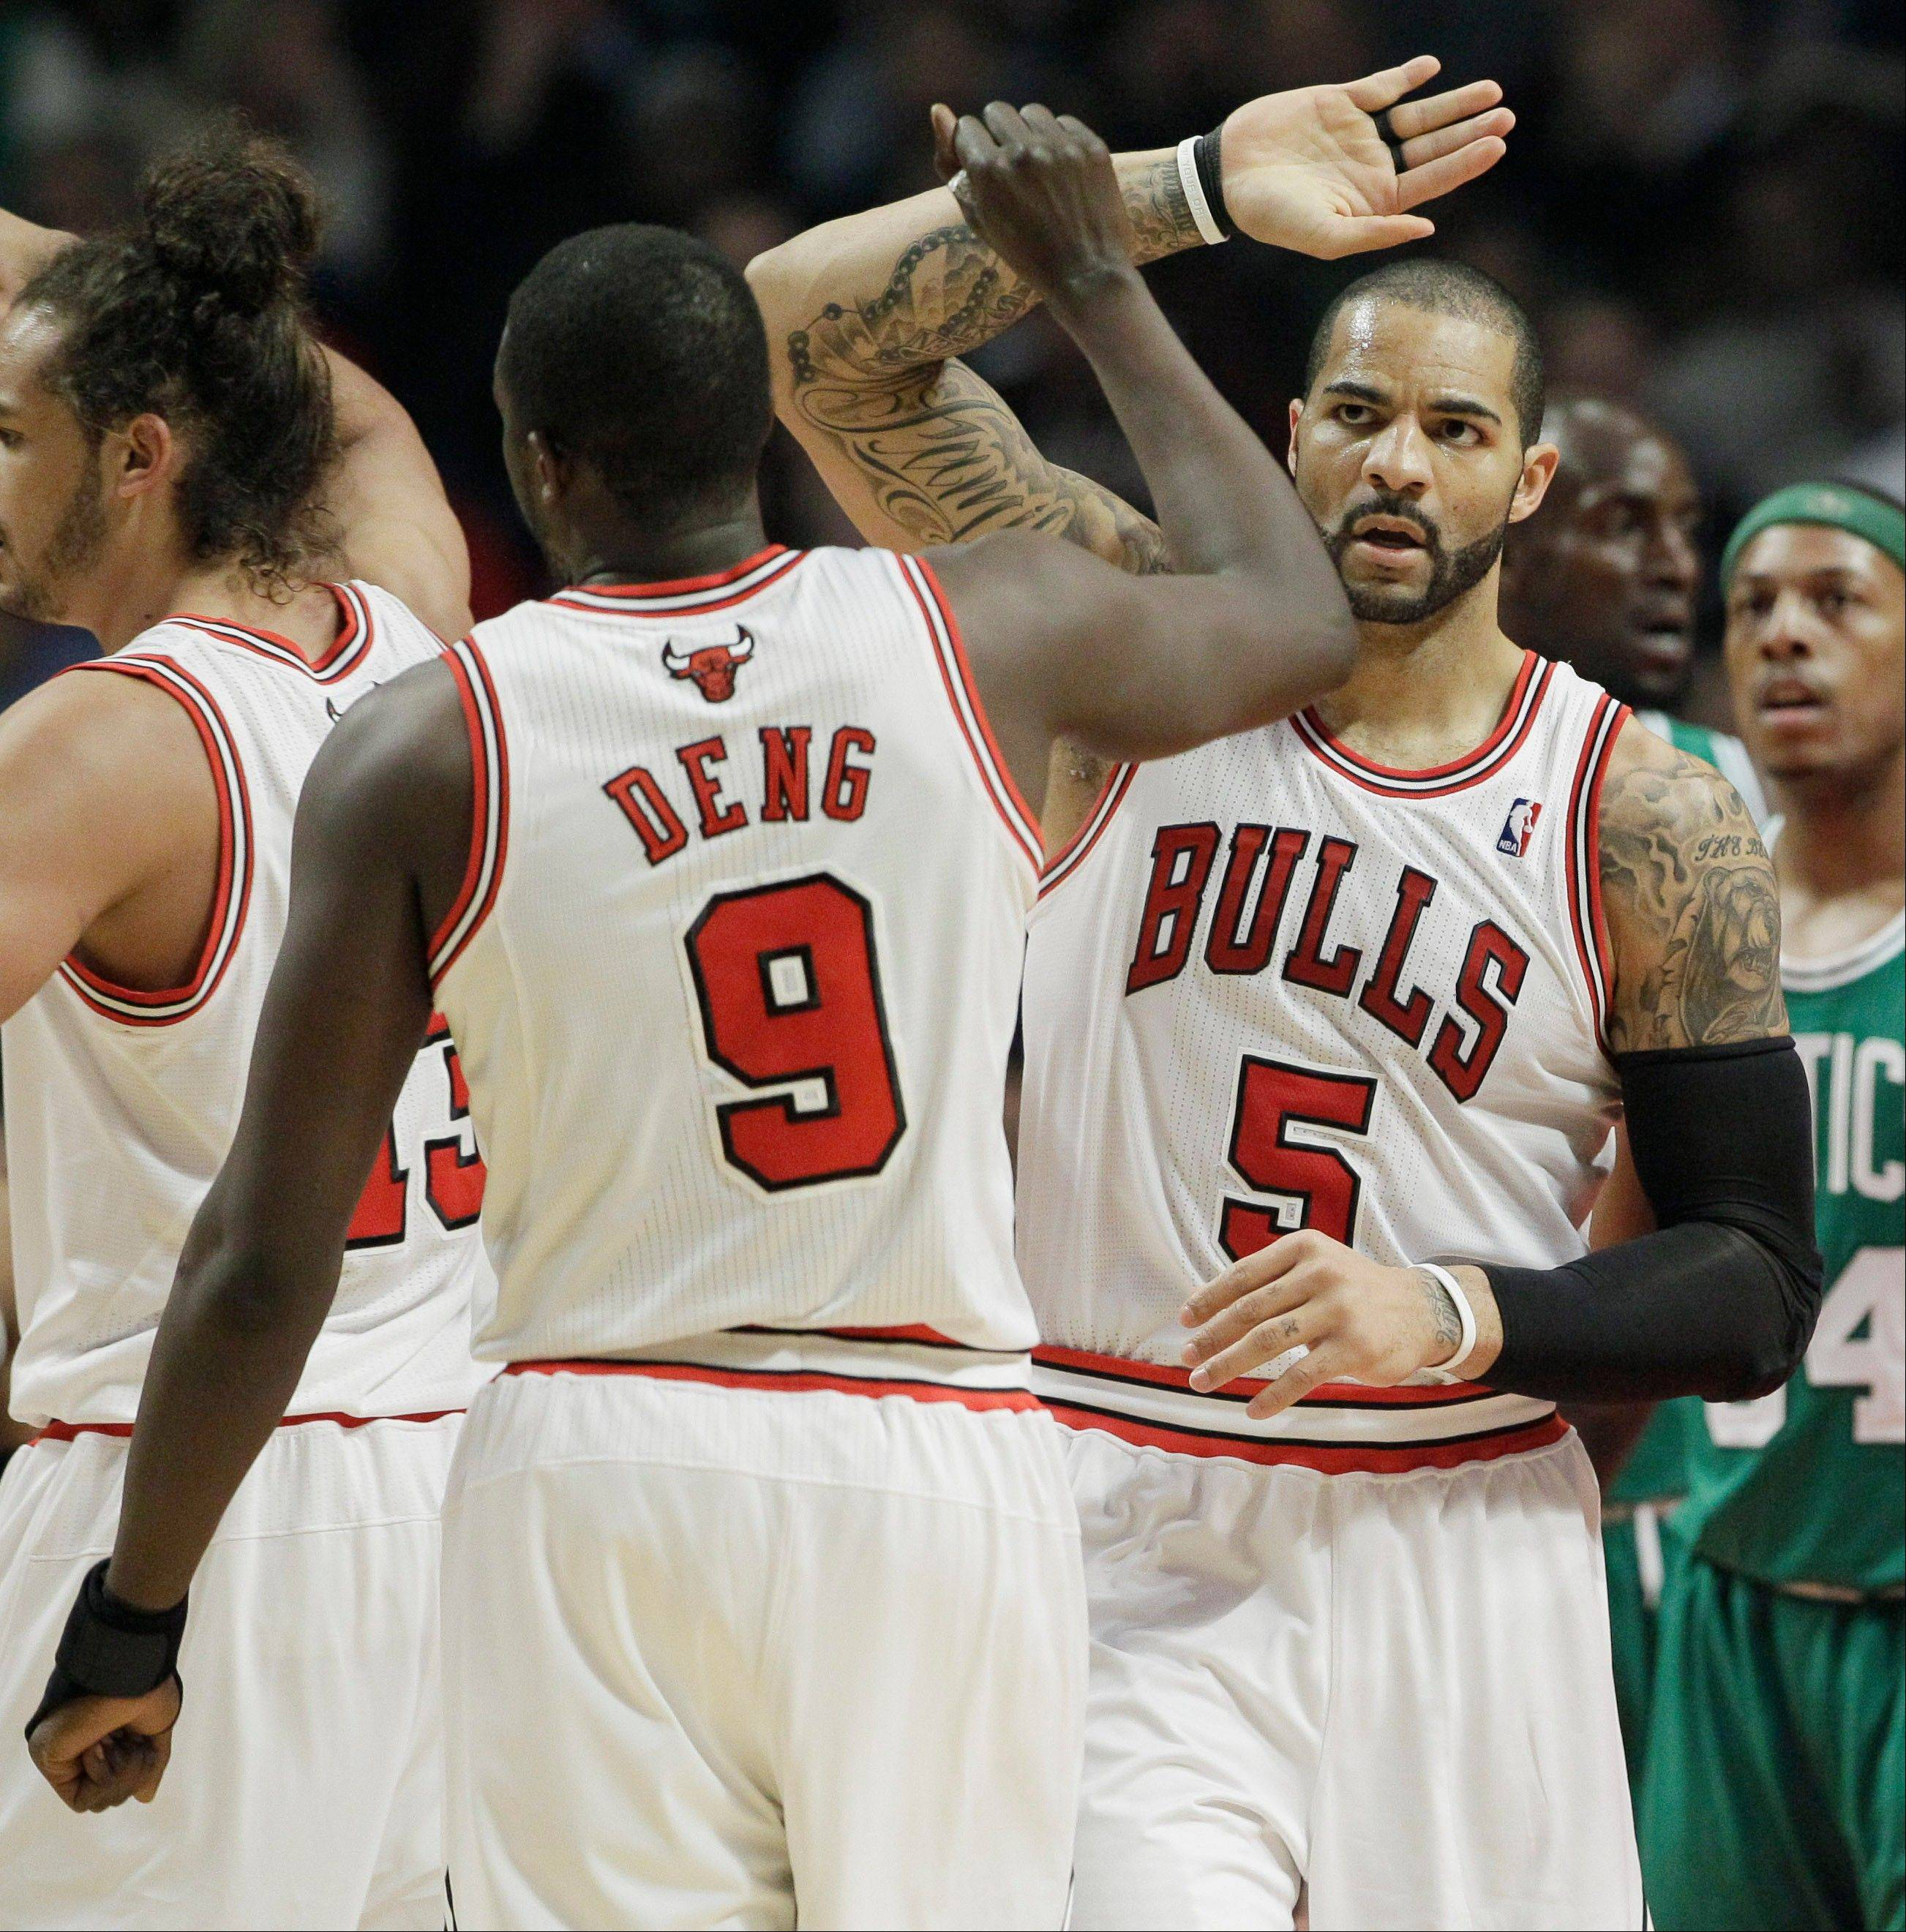 Rose still out, but Bulls still prevail